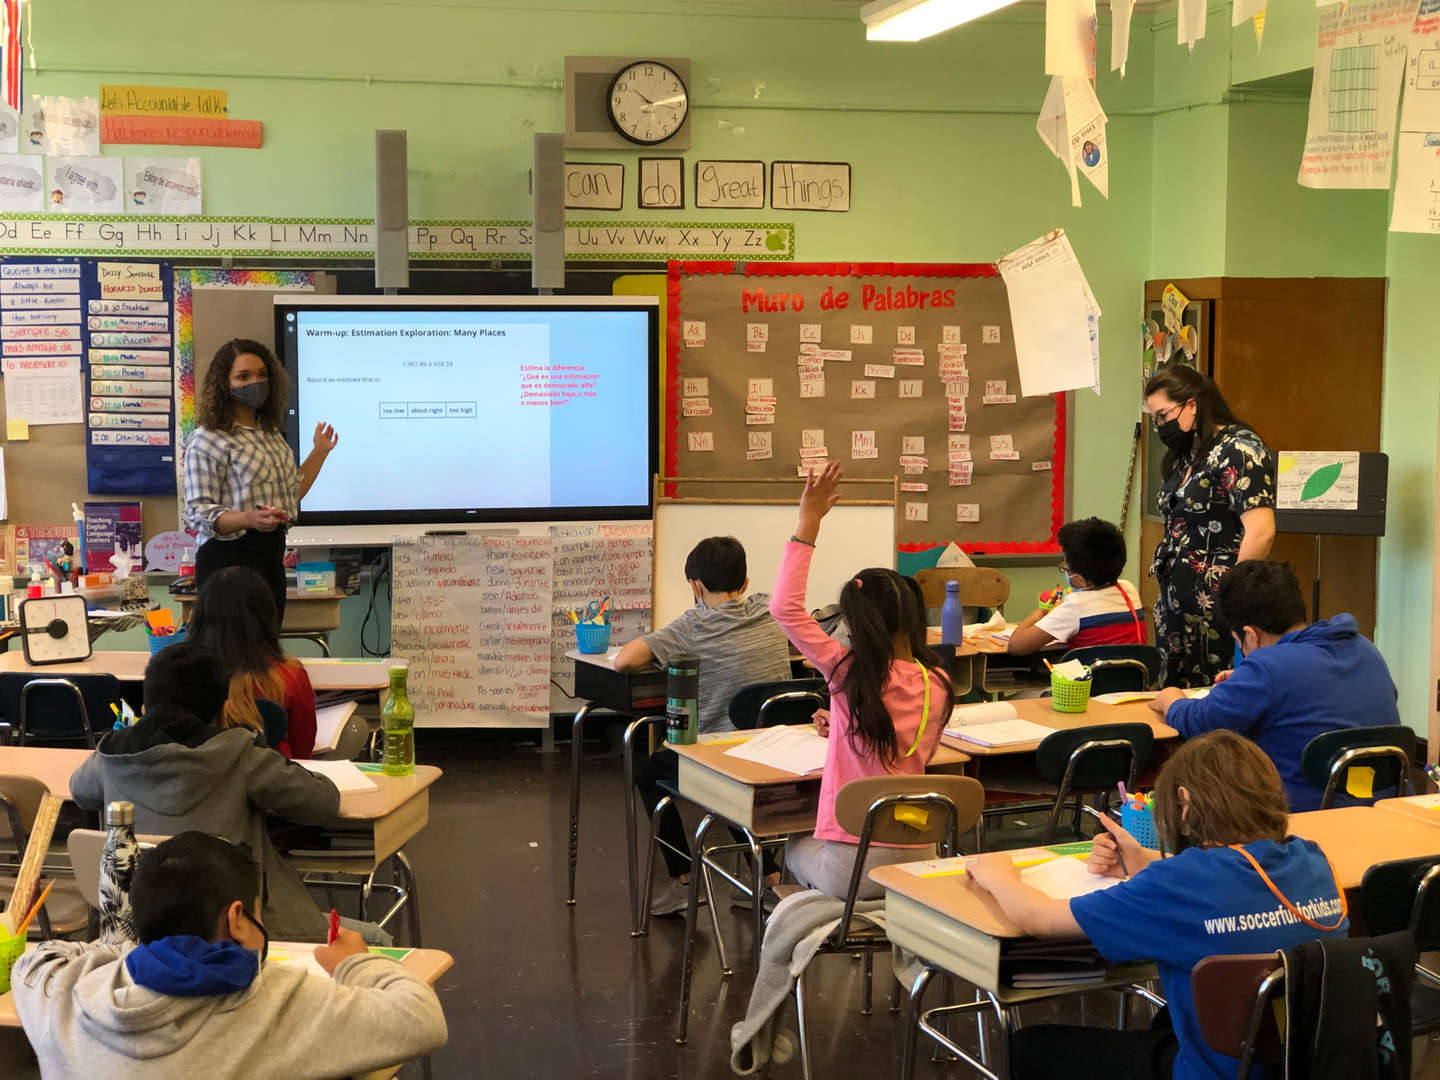 PS 139 students during class.